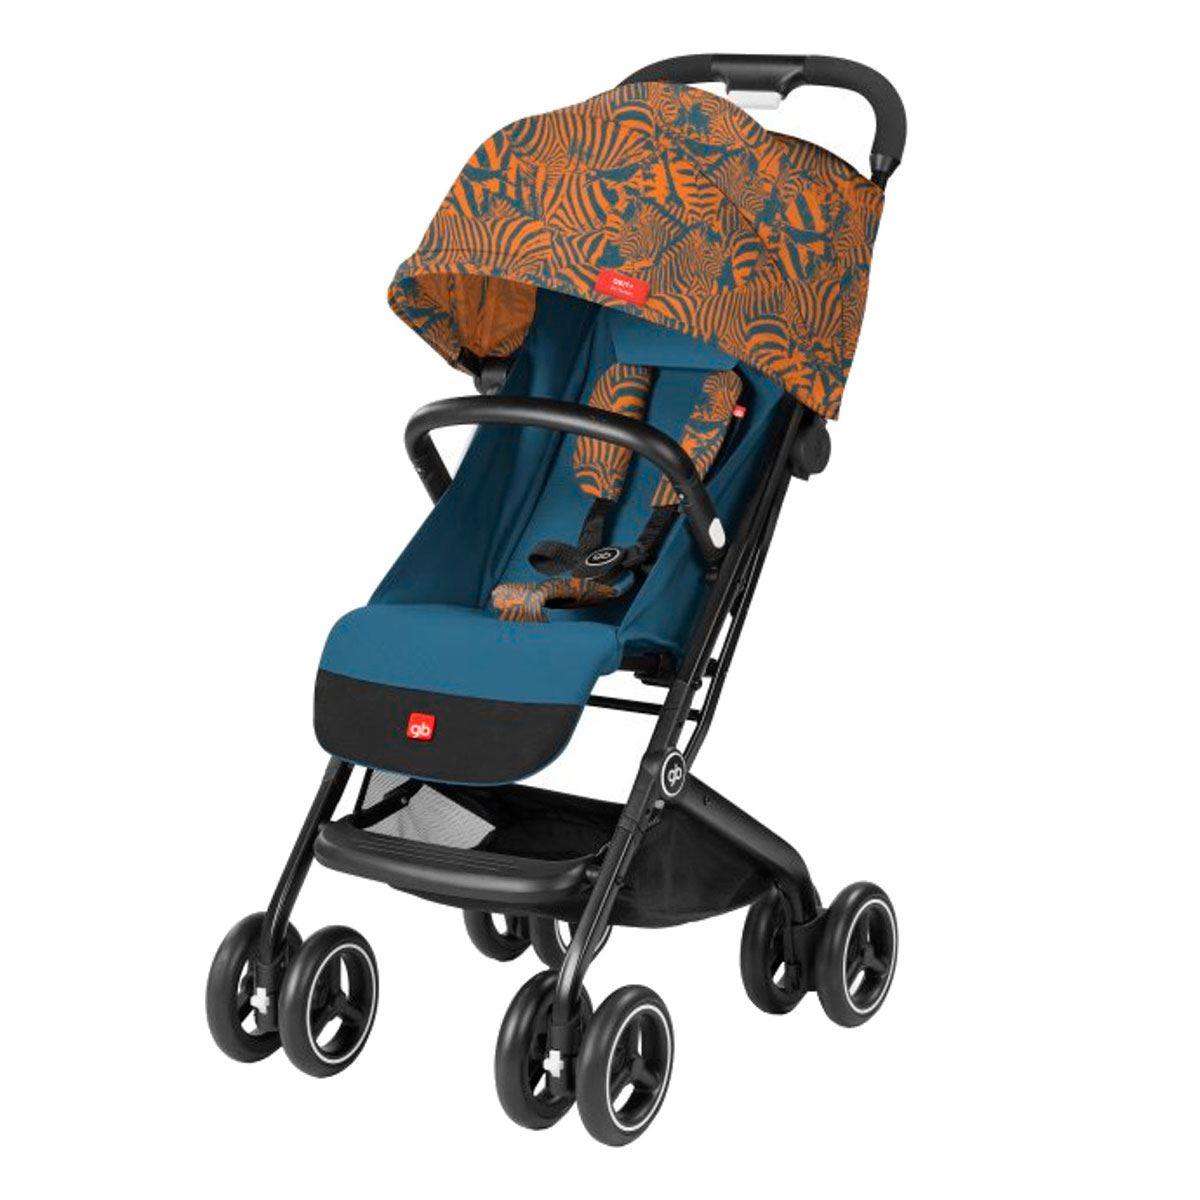 Silla de paseo Gb Qbit+ All Terrain Fashion Edition